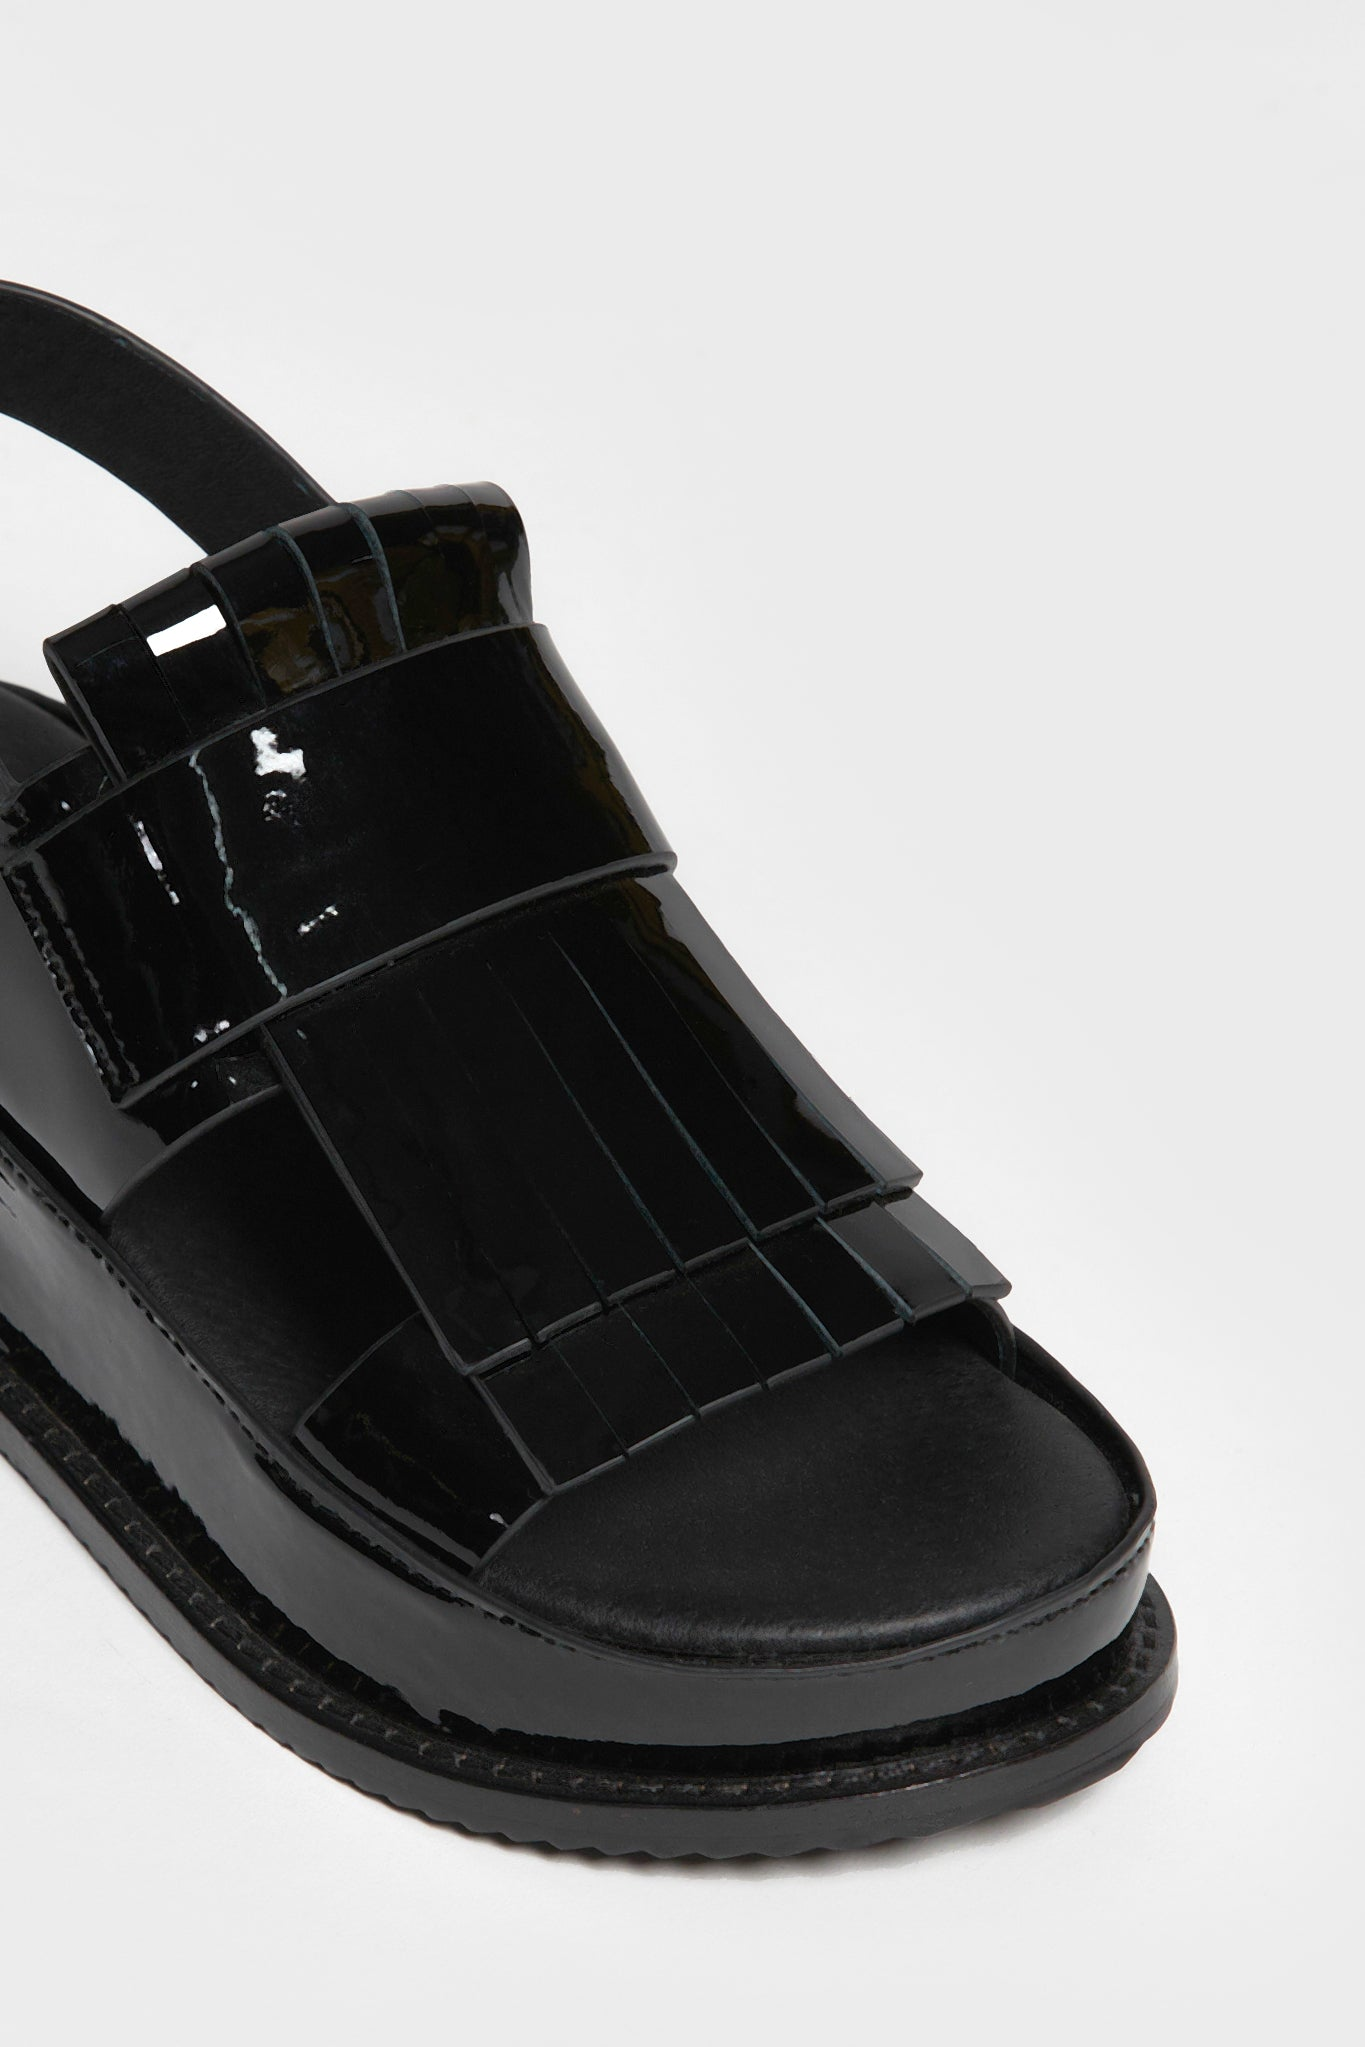 ha sandal black patent